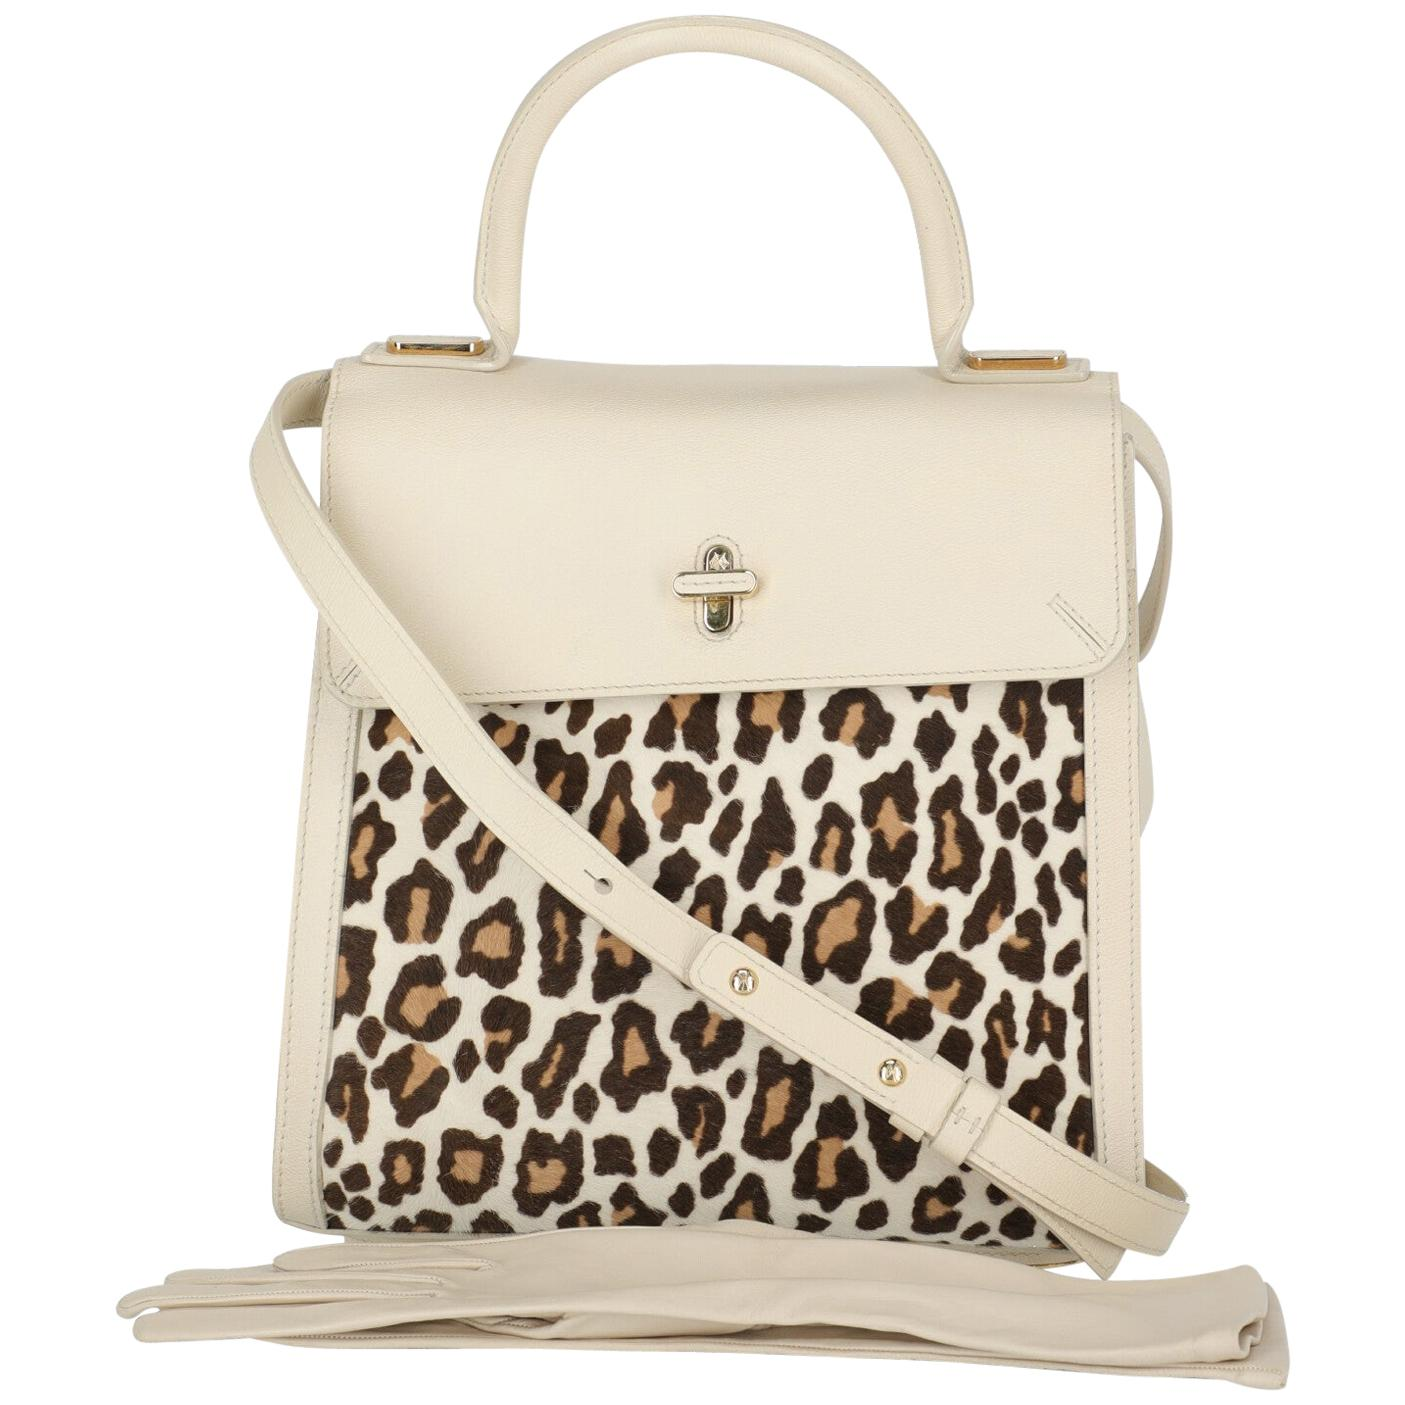 Charlotte Olympia Woman Shoulder bag Brown Leather